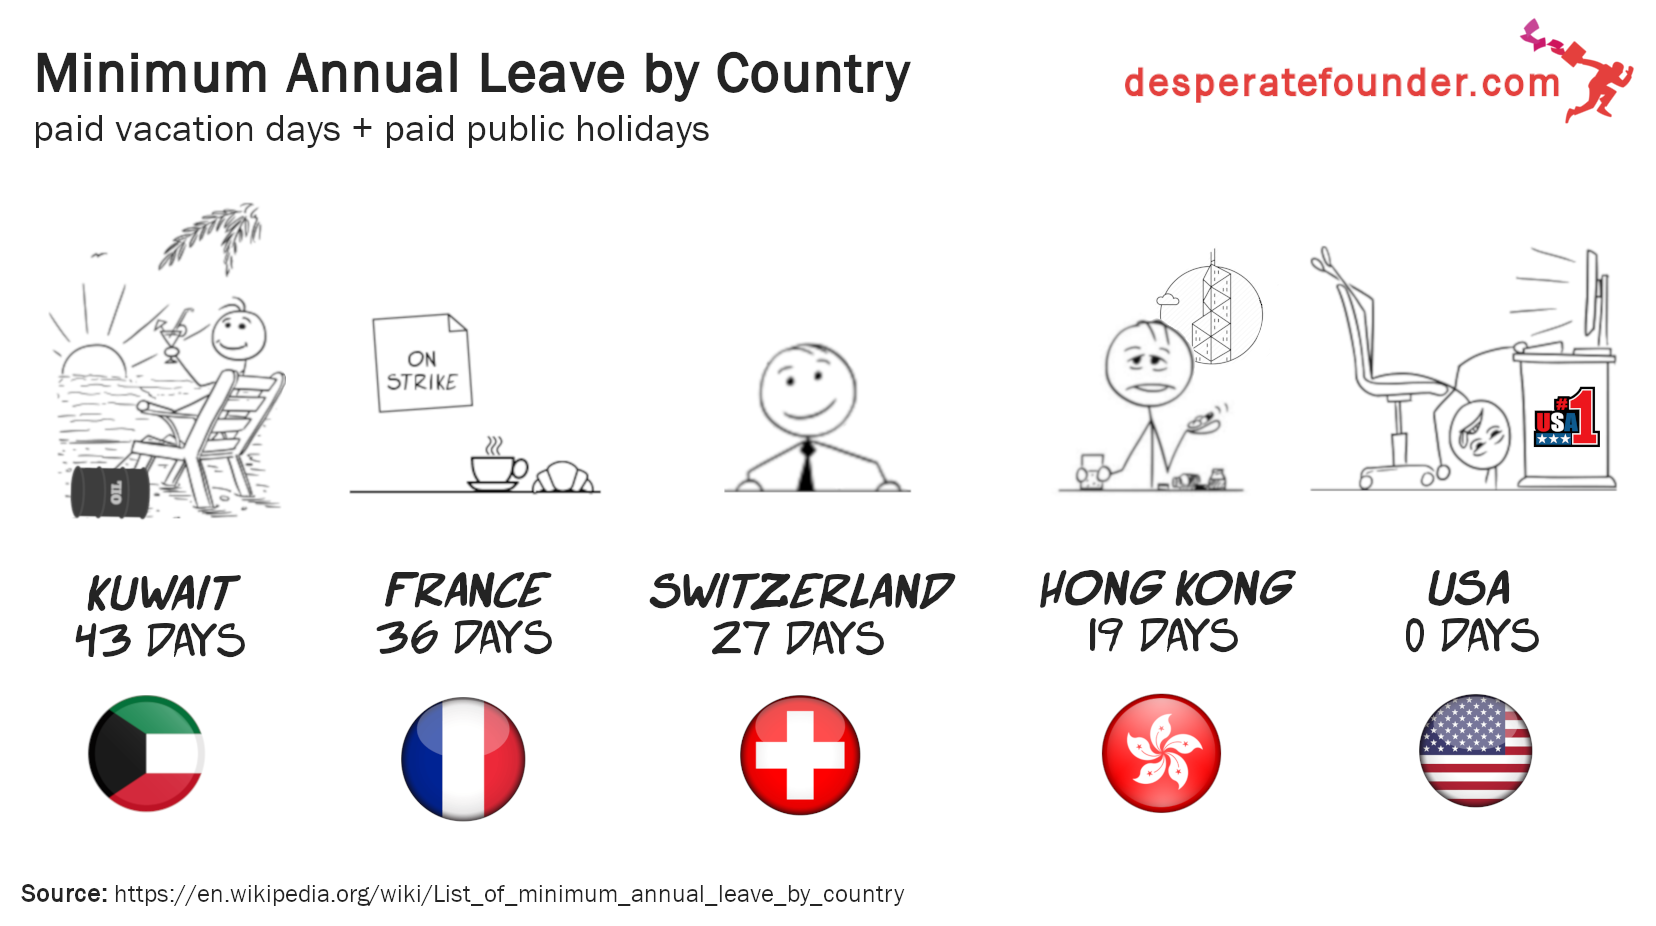 Minimum Annual Leave by Country